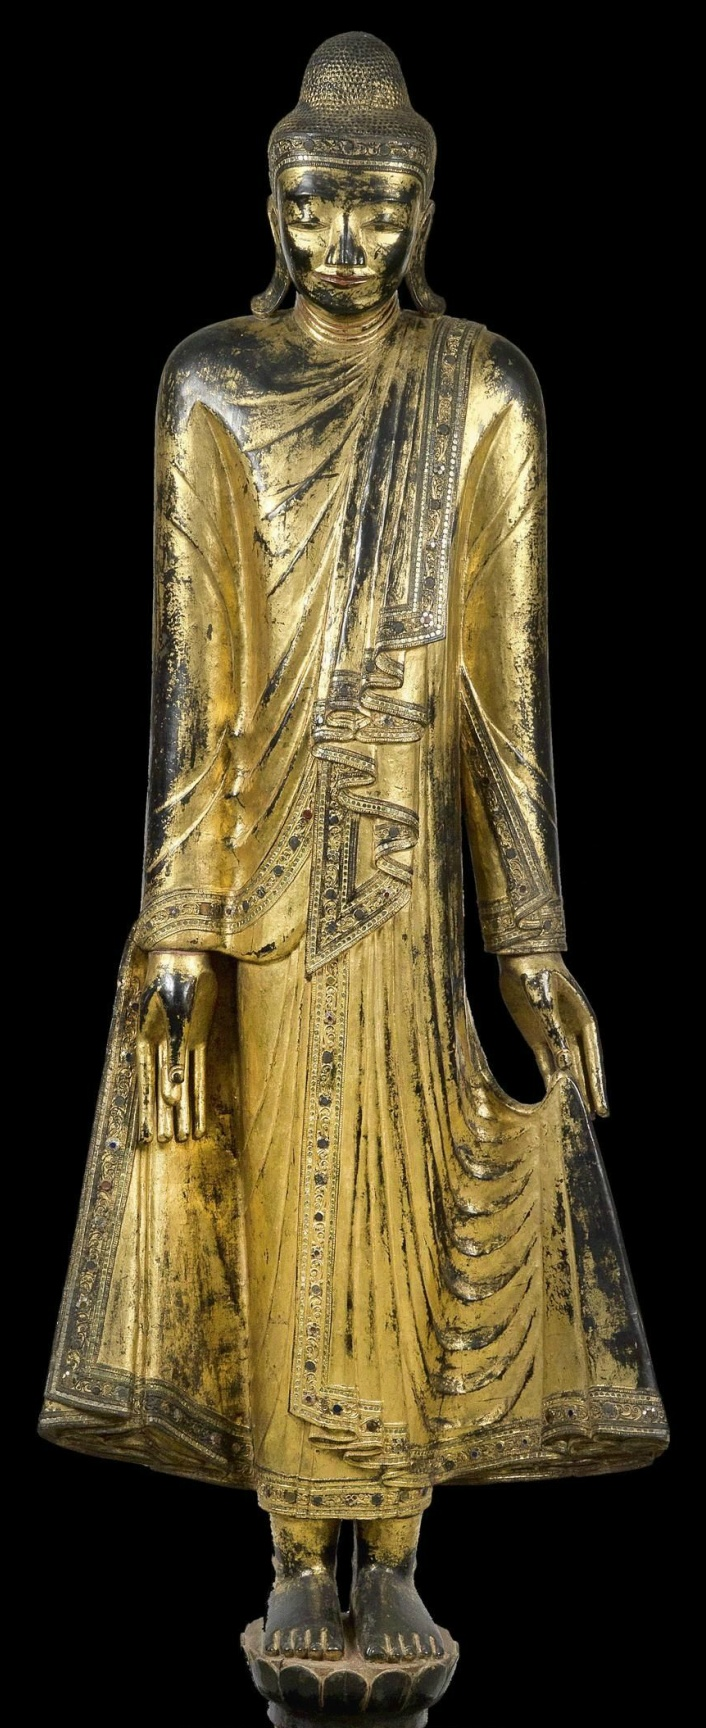 Burma: A large Buddha statue, standing on a lotus flower.  Wood, with black and partially red lacquer ground and gilding. The hair in small, thick nubs, with hemispherical 'ushnisha' on the head. In long robes with elaborate folds. The robe borders and the diadem over the brow decorated with small volute tendrils in gesso technique, as well as with rows and flowers made of round, white, red and green mirror plates.